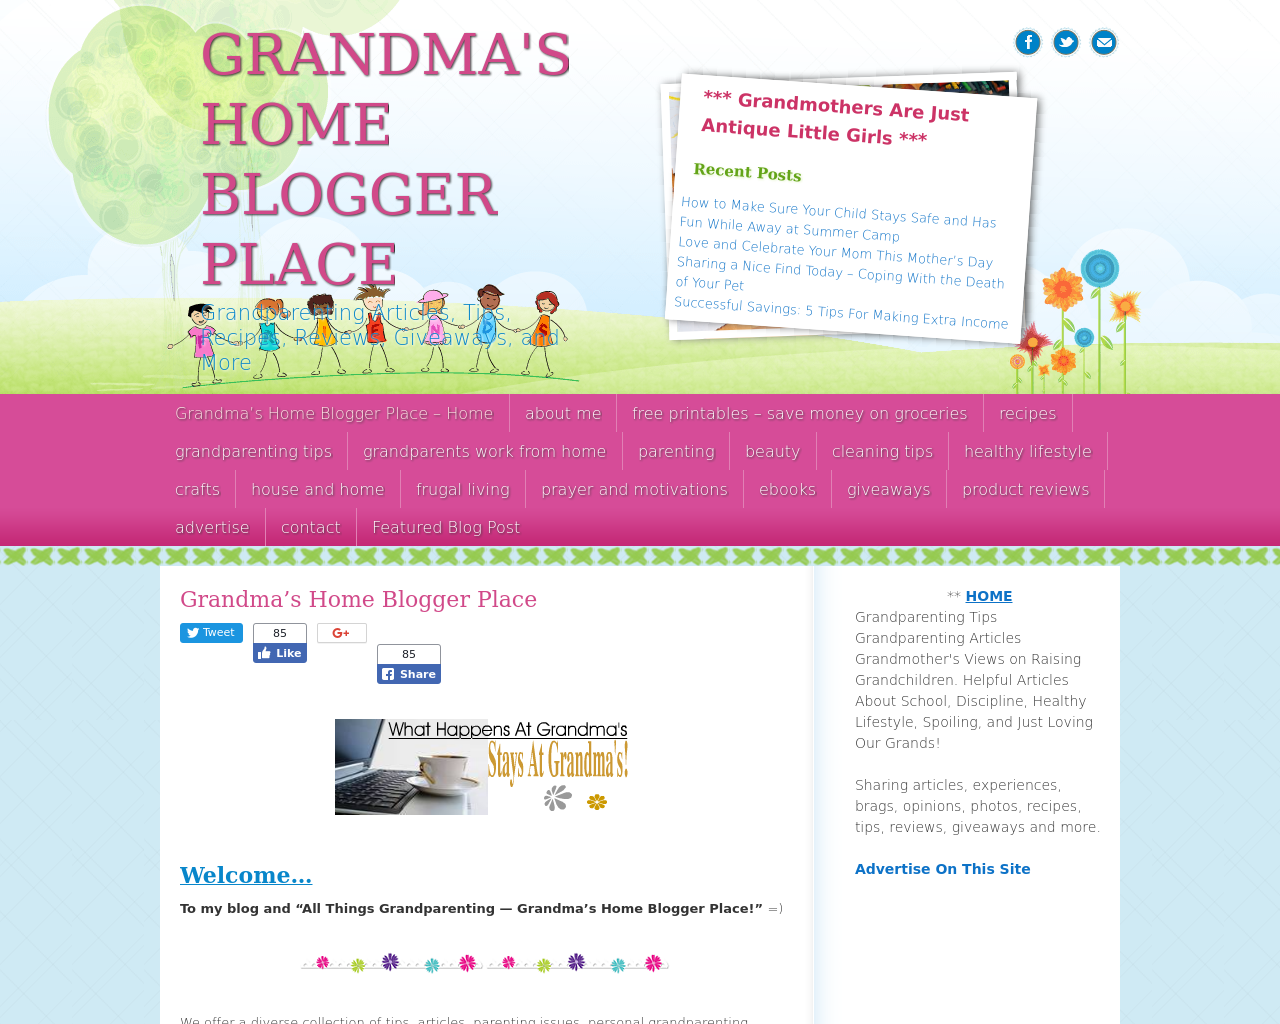 Grandma's-Home-Blogger's-Place-Advertising-Reviews-Pricing